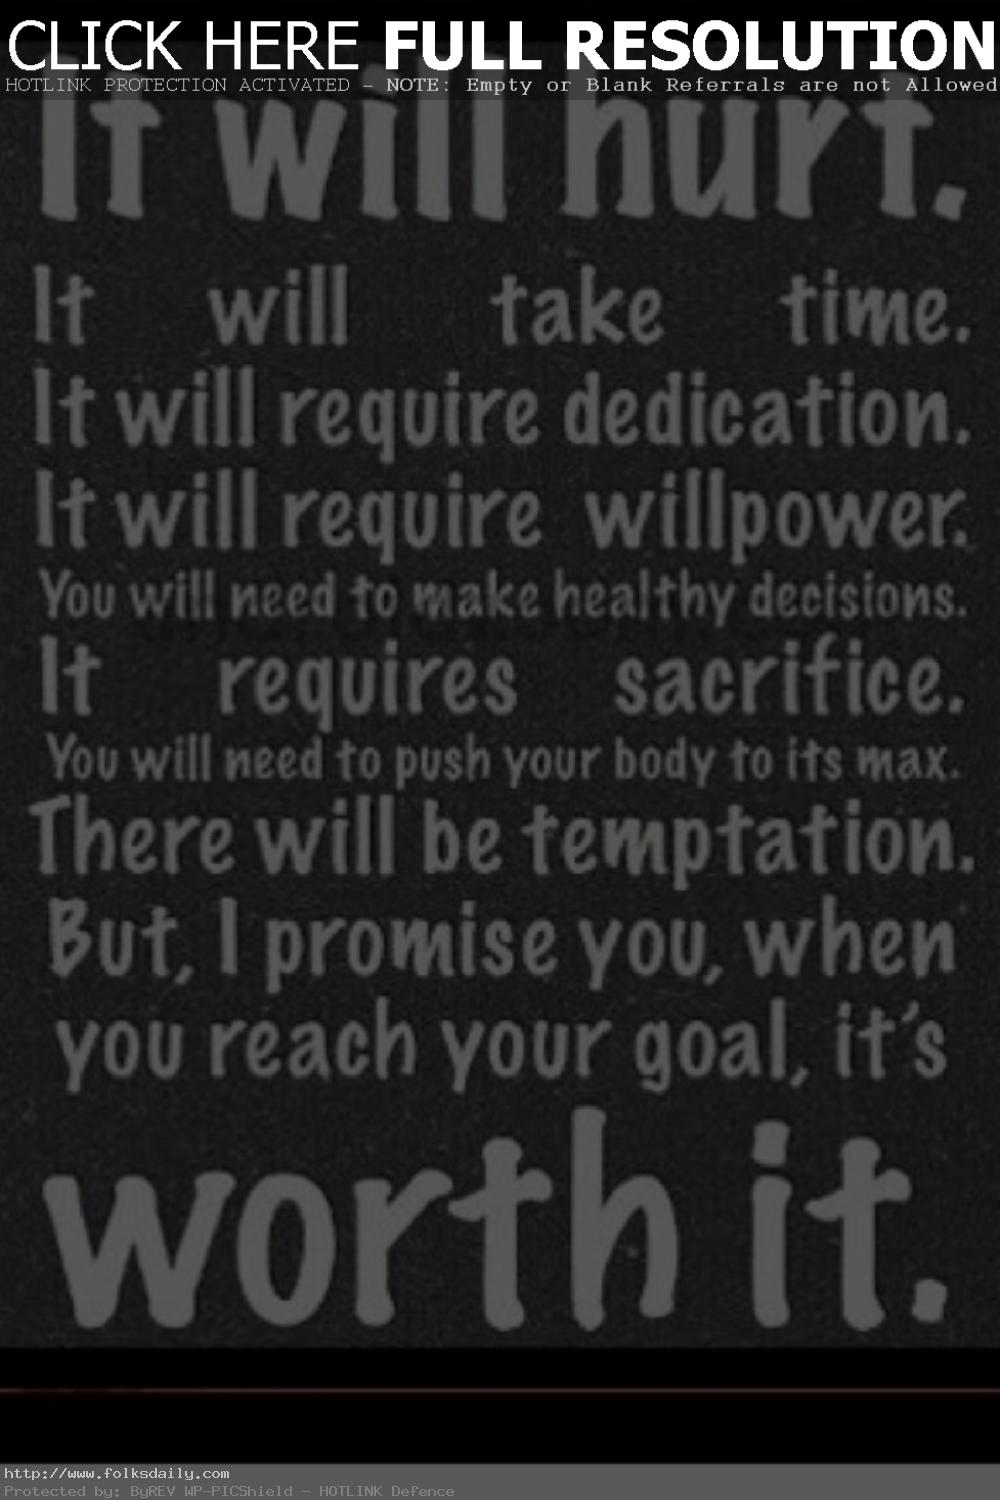 Famous Quotes About Weight Loss Quotesgram. Beautiful Quotes Ever Written. Famous Quotes Edgar Allan Poe. Crush Quotes On Pinterest. Adventure Quotes Photos. Quotes About Moving Onto Better Things. Women's Day Quotes And Sayings. Positive Quotes Nursing Students. Tumblr Quotes Emotional